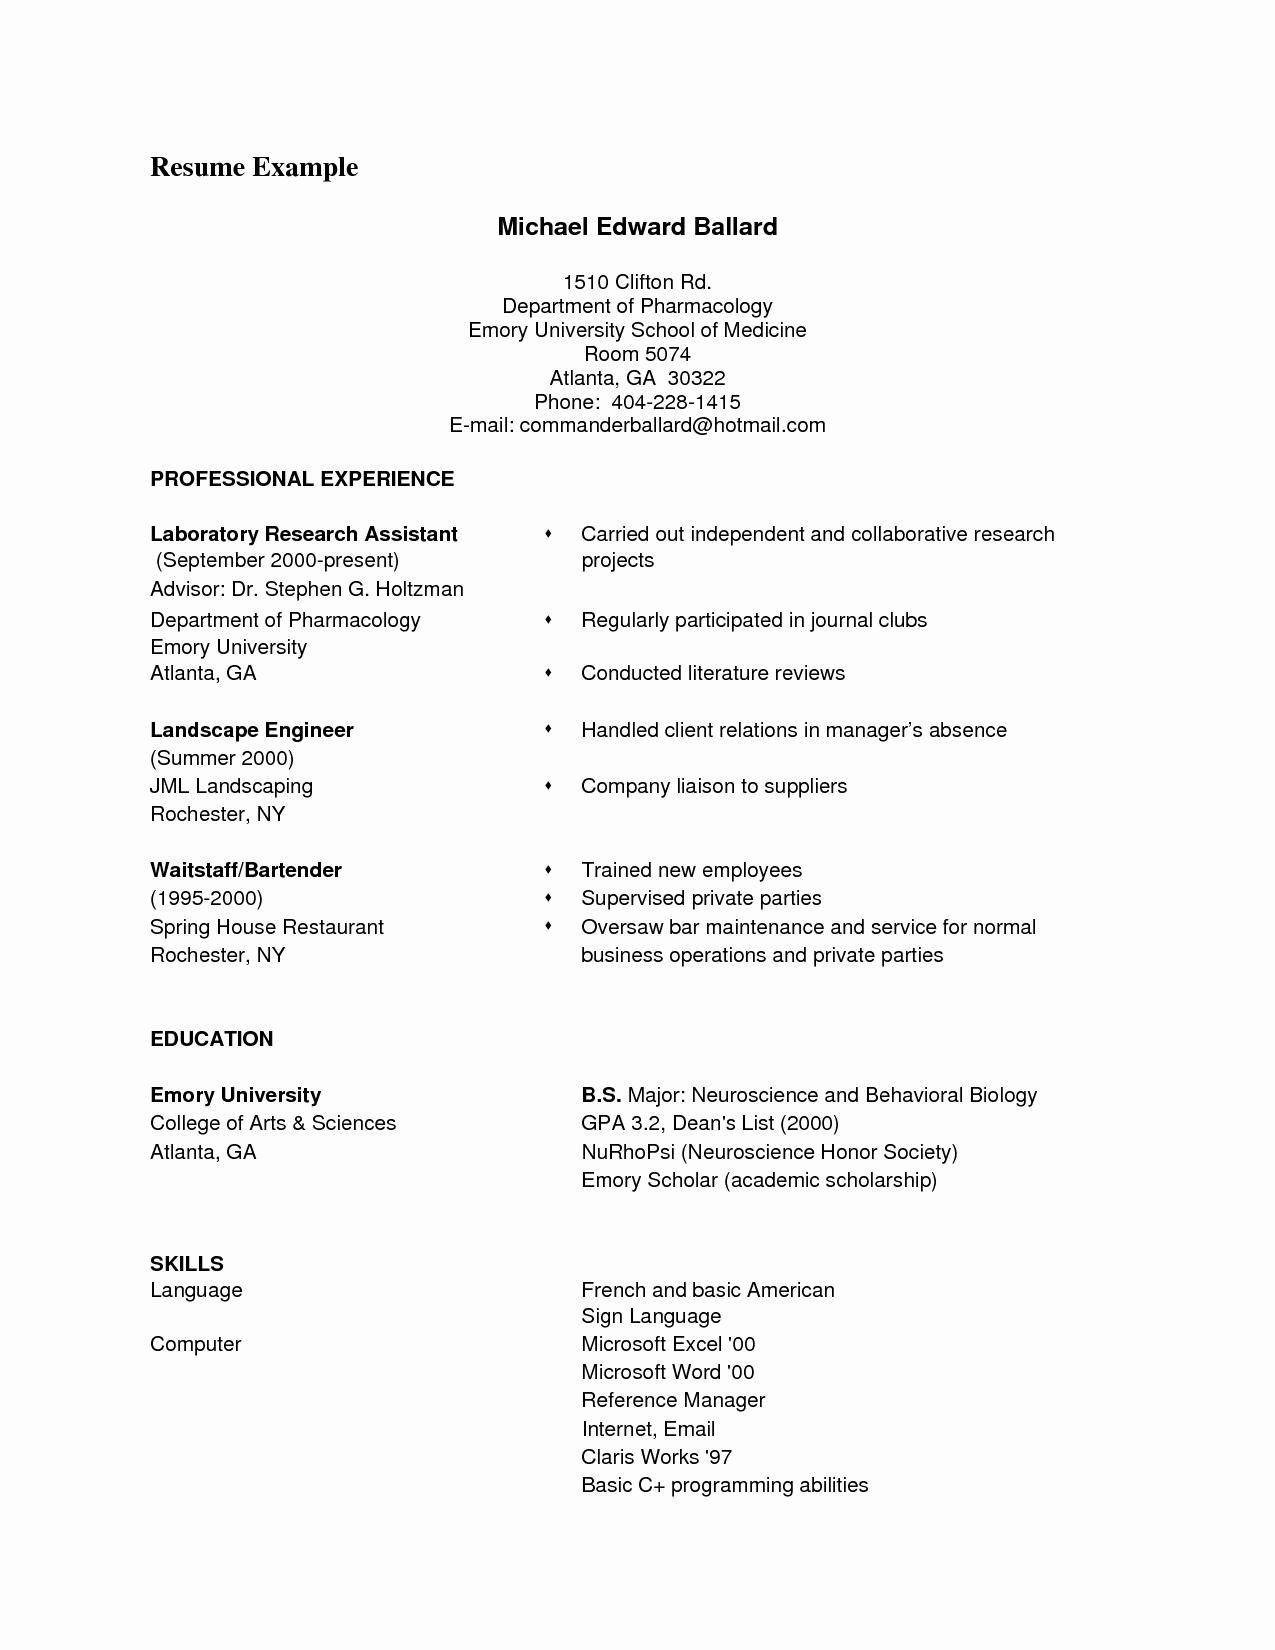 Resume Samples Pdf Free Download